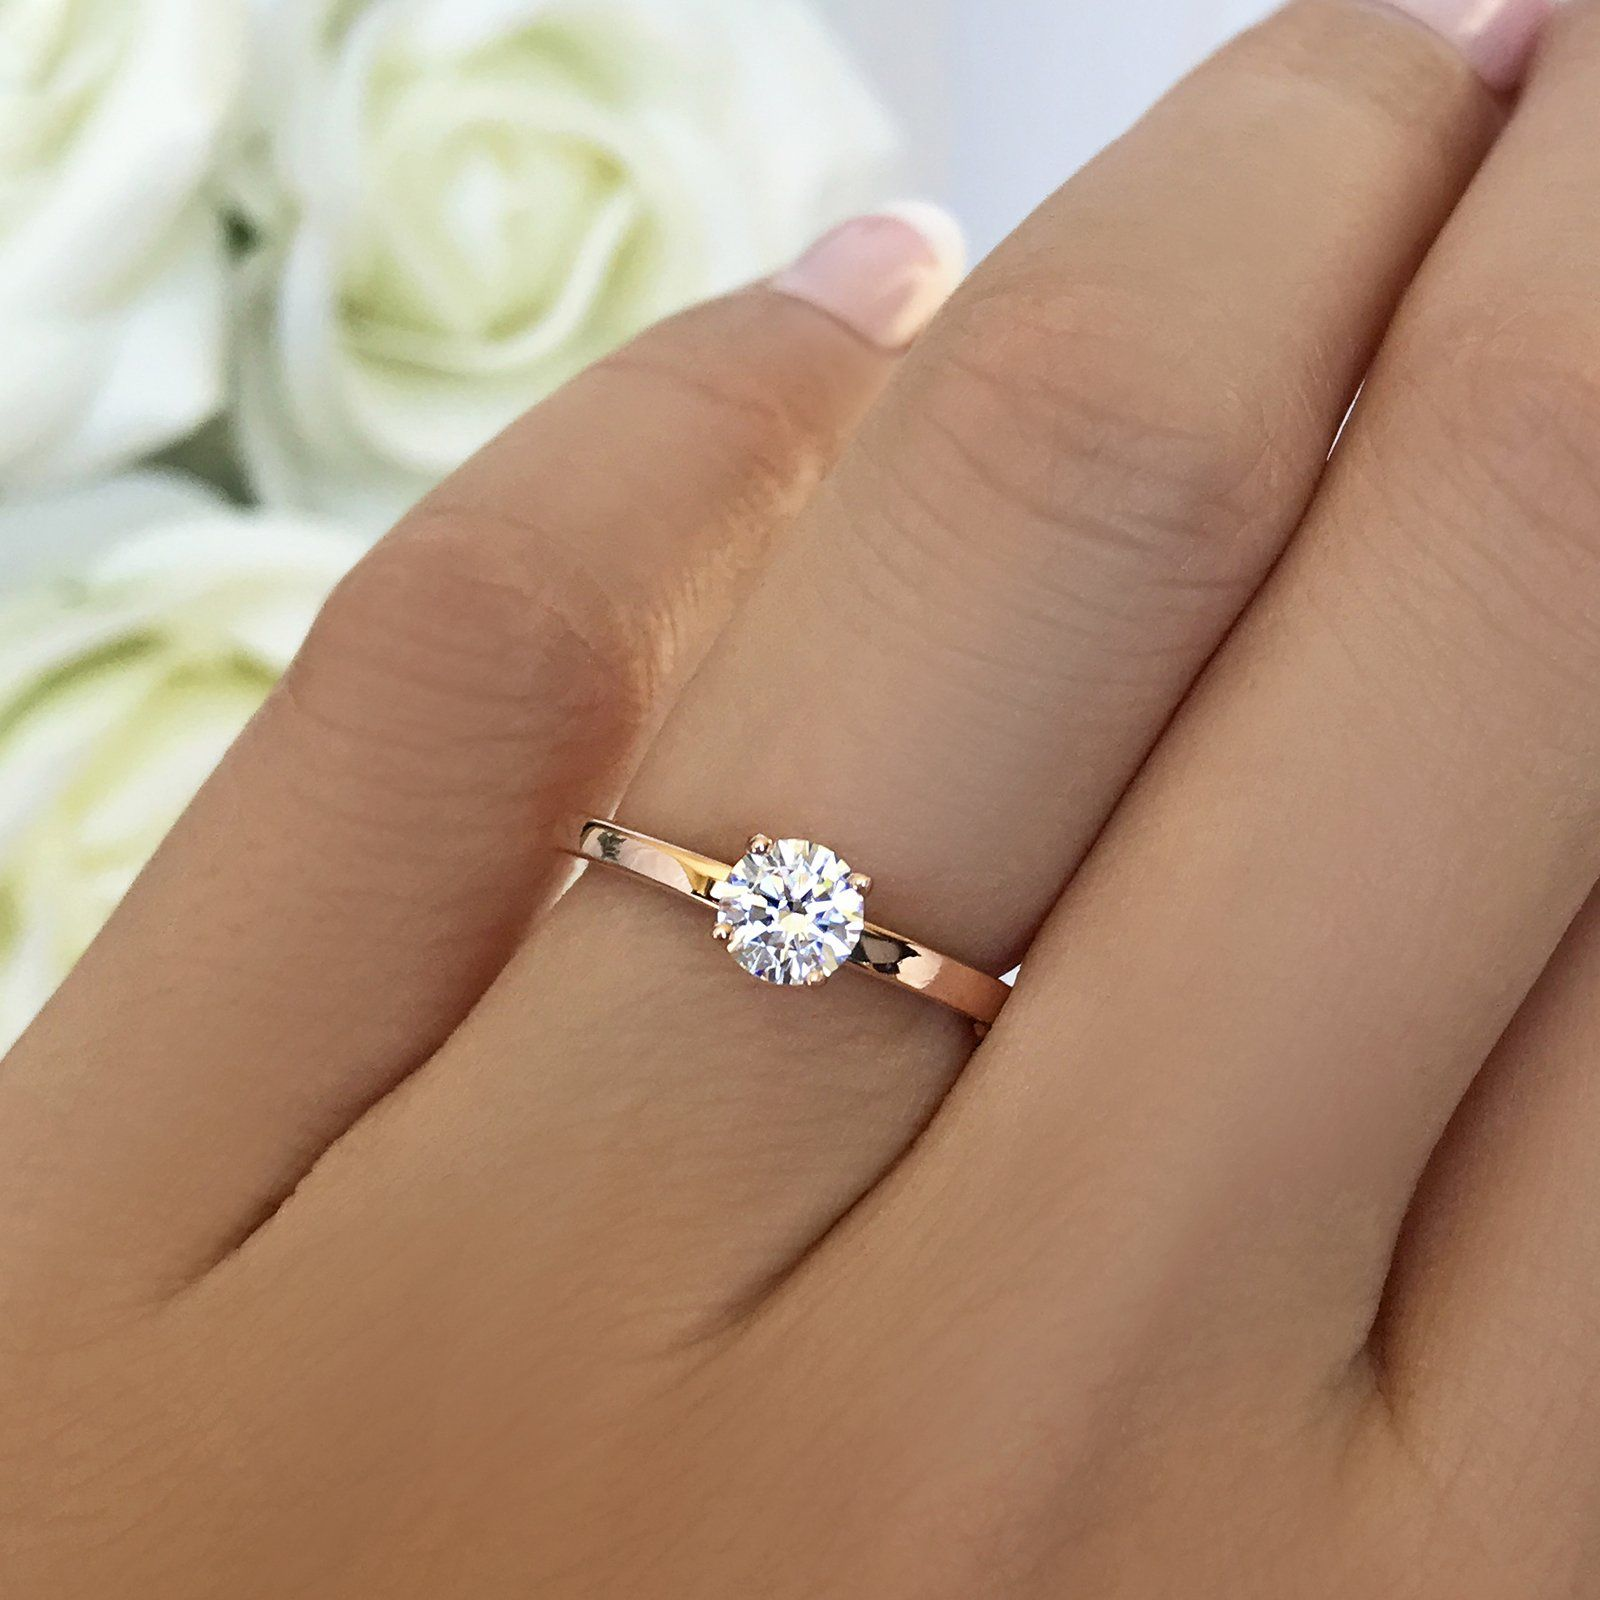 1 2 Ct Solitaire Ring 10k Solid Rose Gold Solitaire Engagement Ring Rose Gold Rose Engagement Ring Diamond Solitaire Engagement Ring